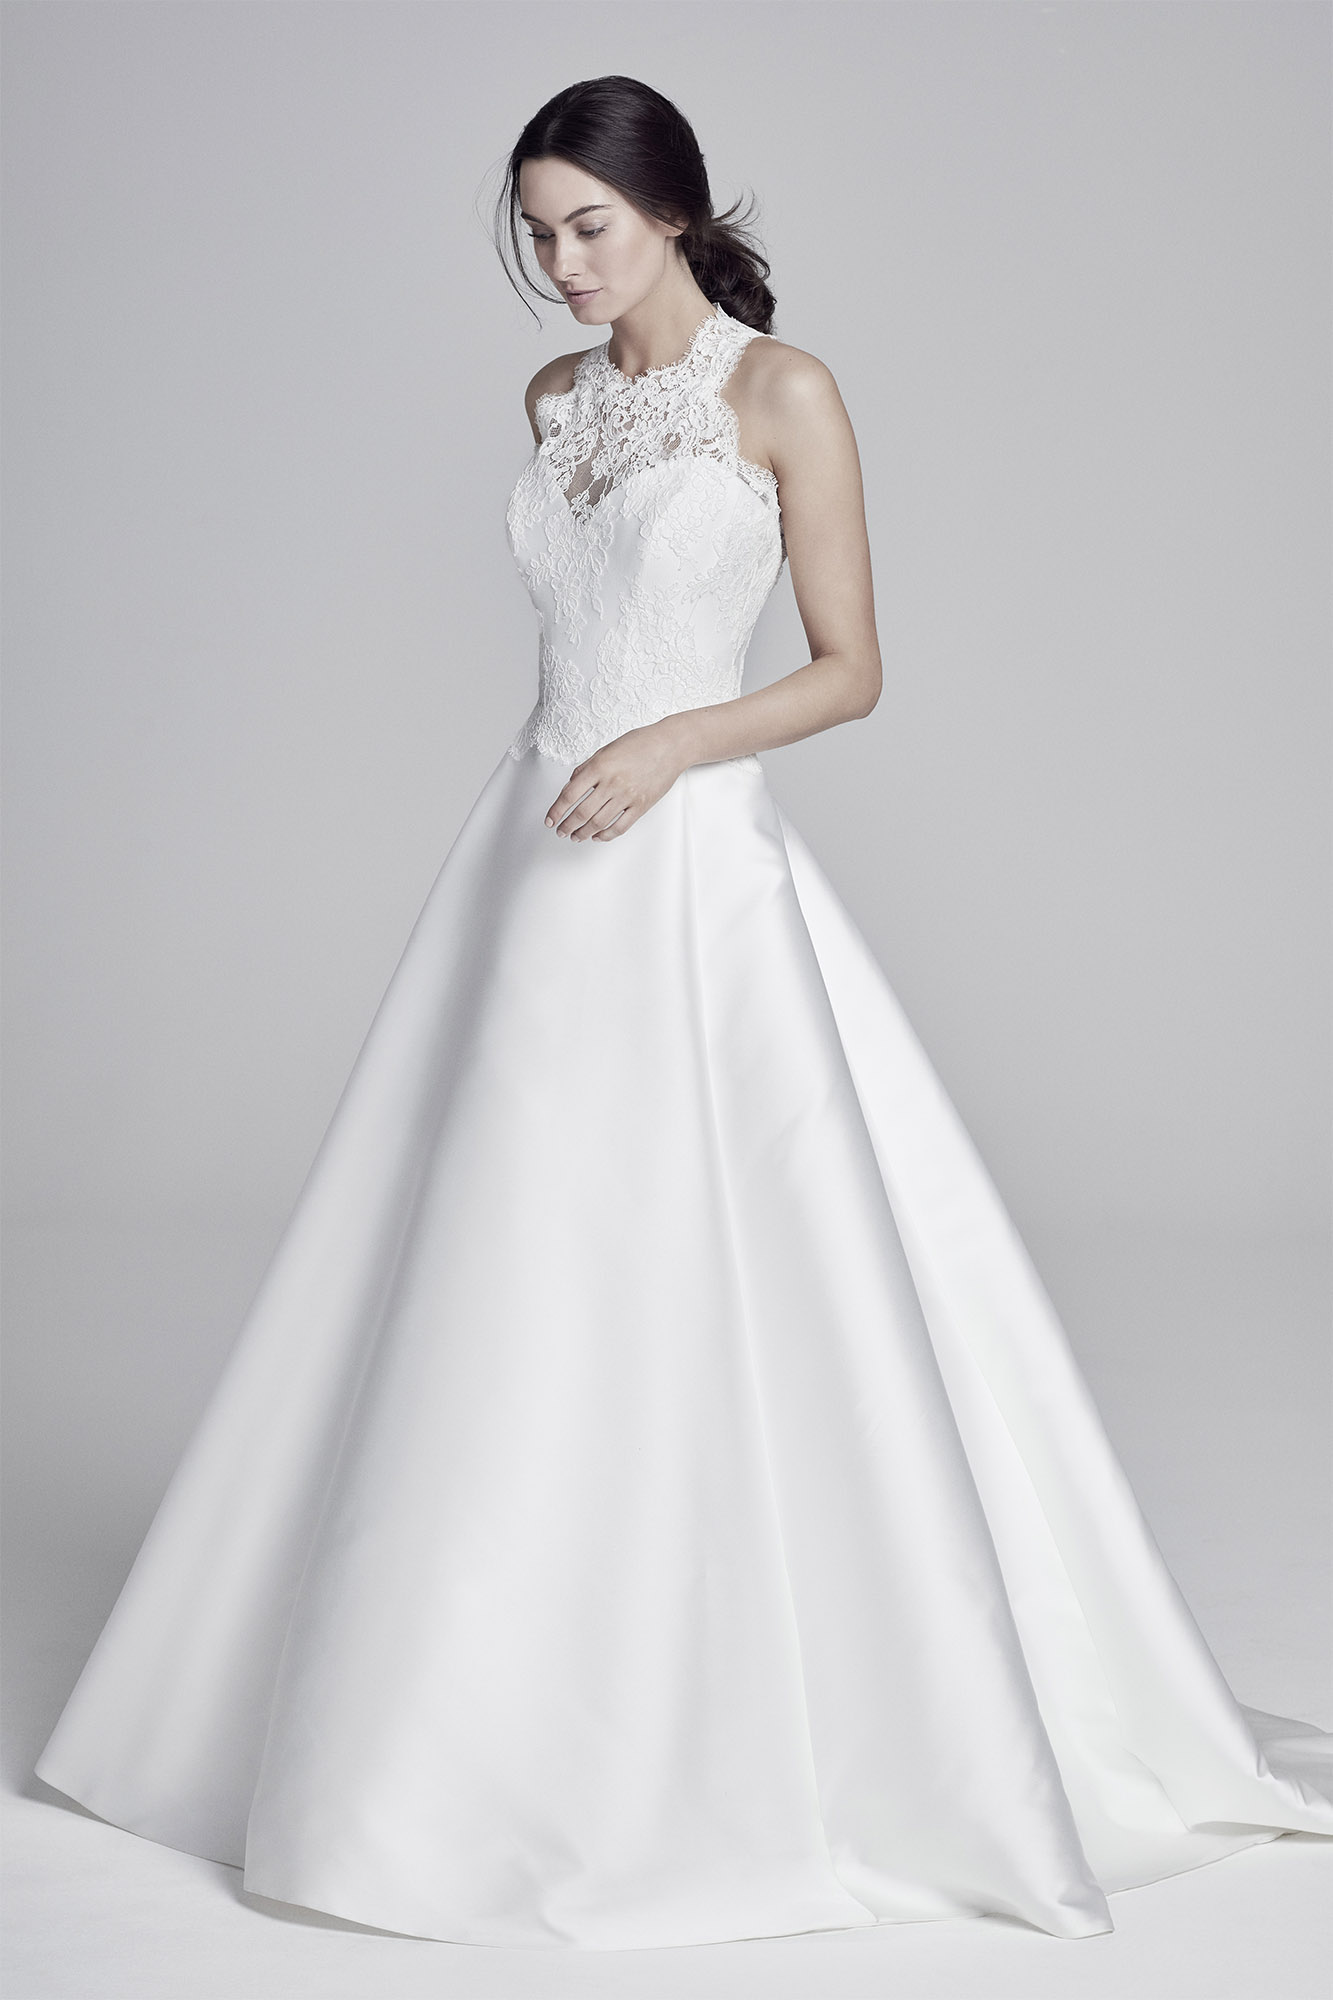 Mandalay | Lookbook Collection 2019 | designer wedding dresses by Suzanne Neville